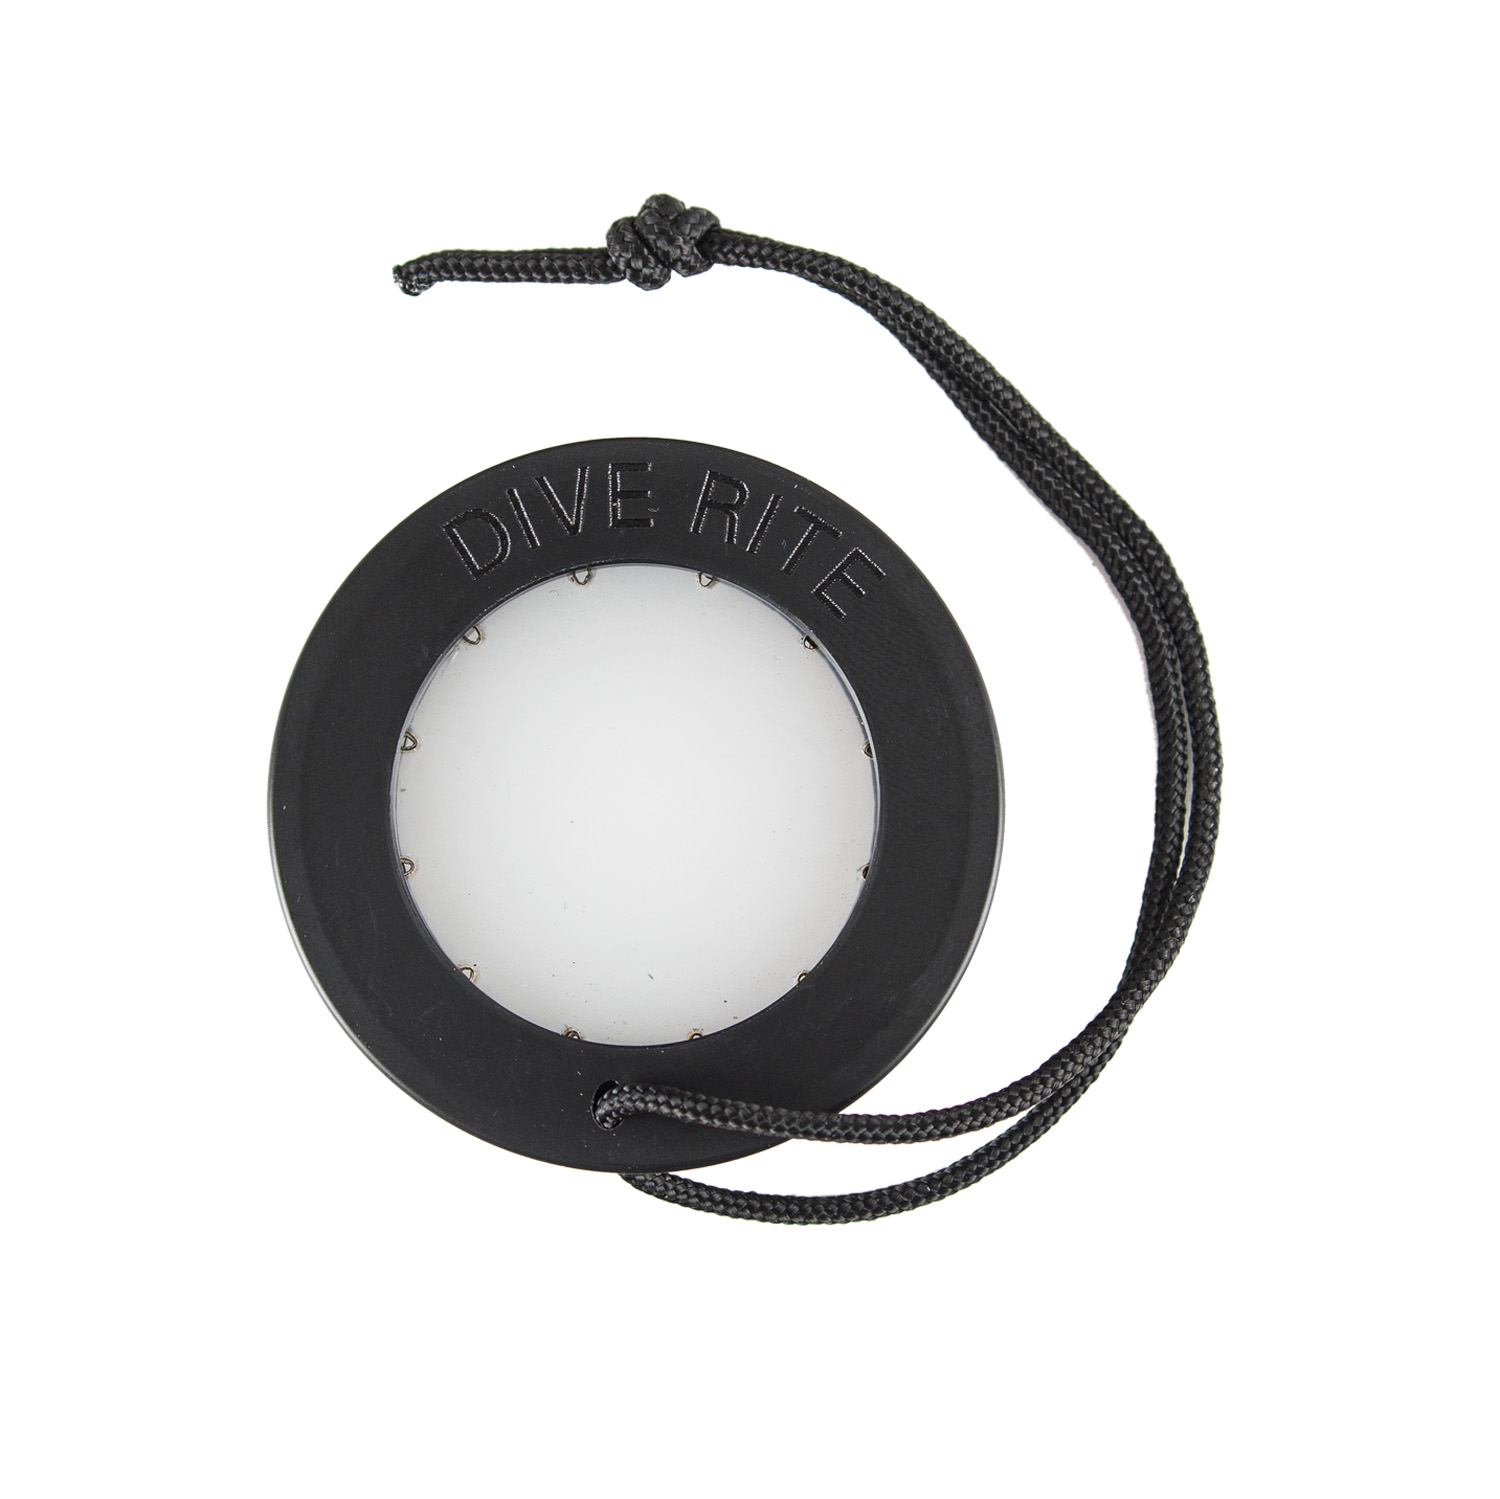 Lights Dive Rite Rx8 Fuel Filter Location Video Diffuser For Bx2 Cx1